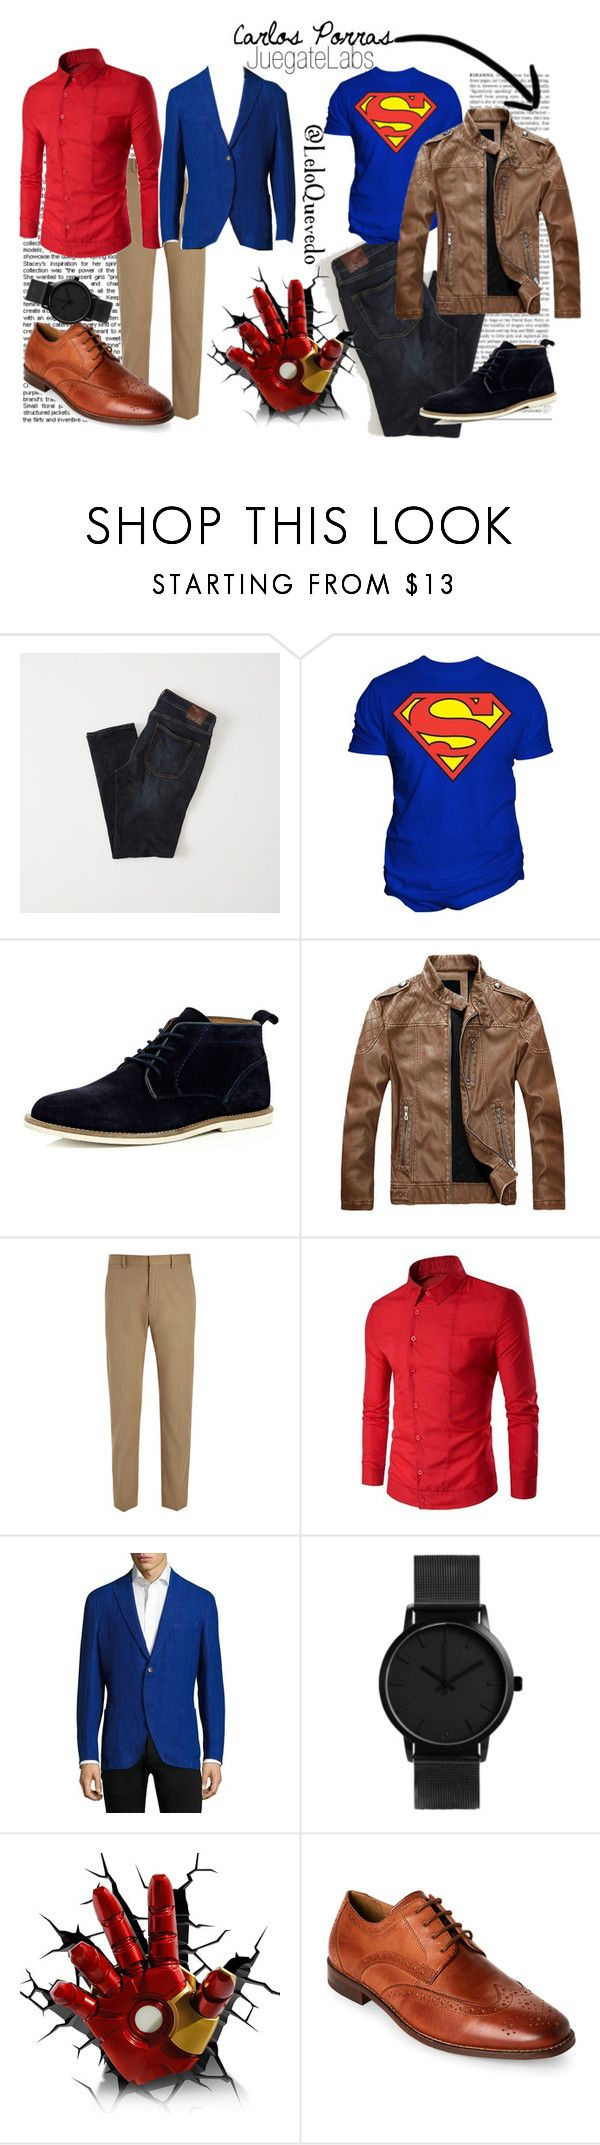 """men style casual"" by leloquevedo on Polyvore featuring Ultimate, Abercrombie & Fitch, Changes, River Island, Joseph, Boglioli, Florsheim, men's fashion y menswear"